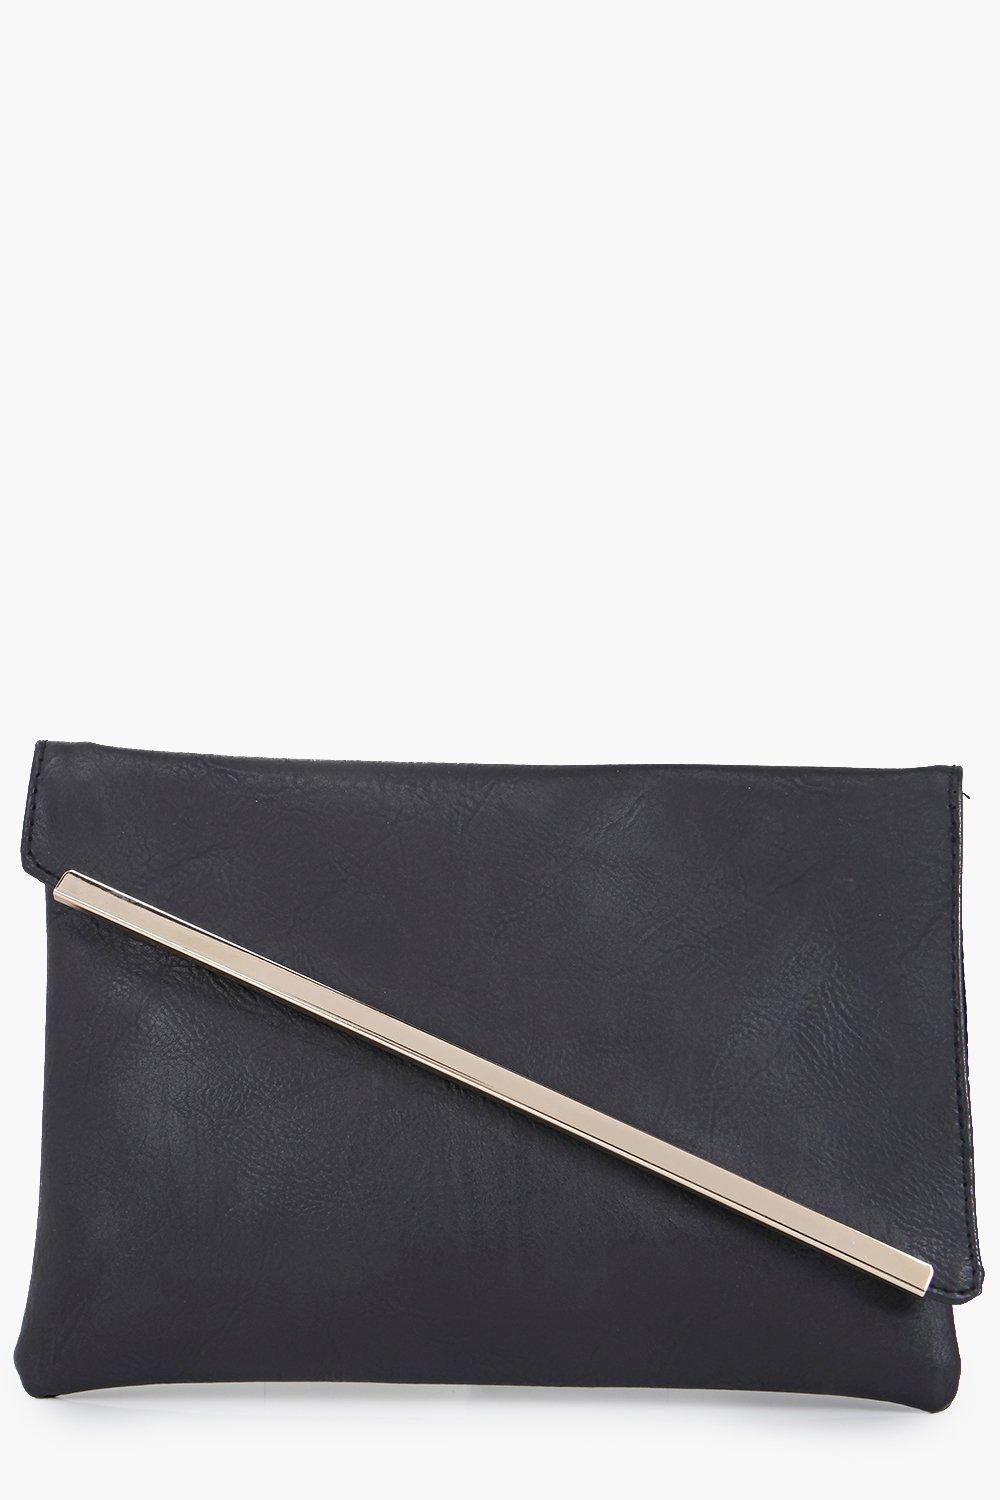 Fold Over Metal Detail Clutch Bag black